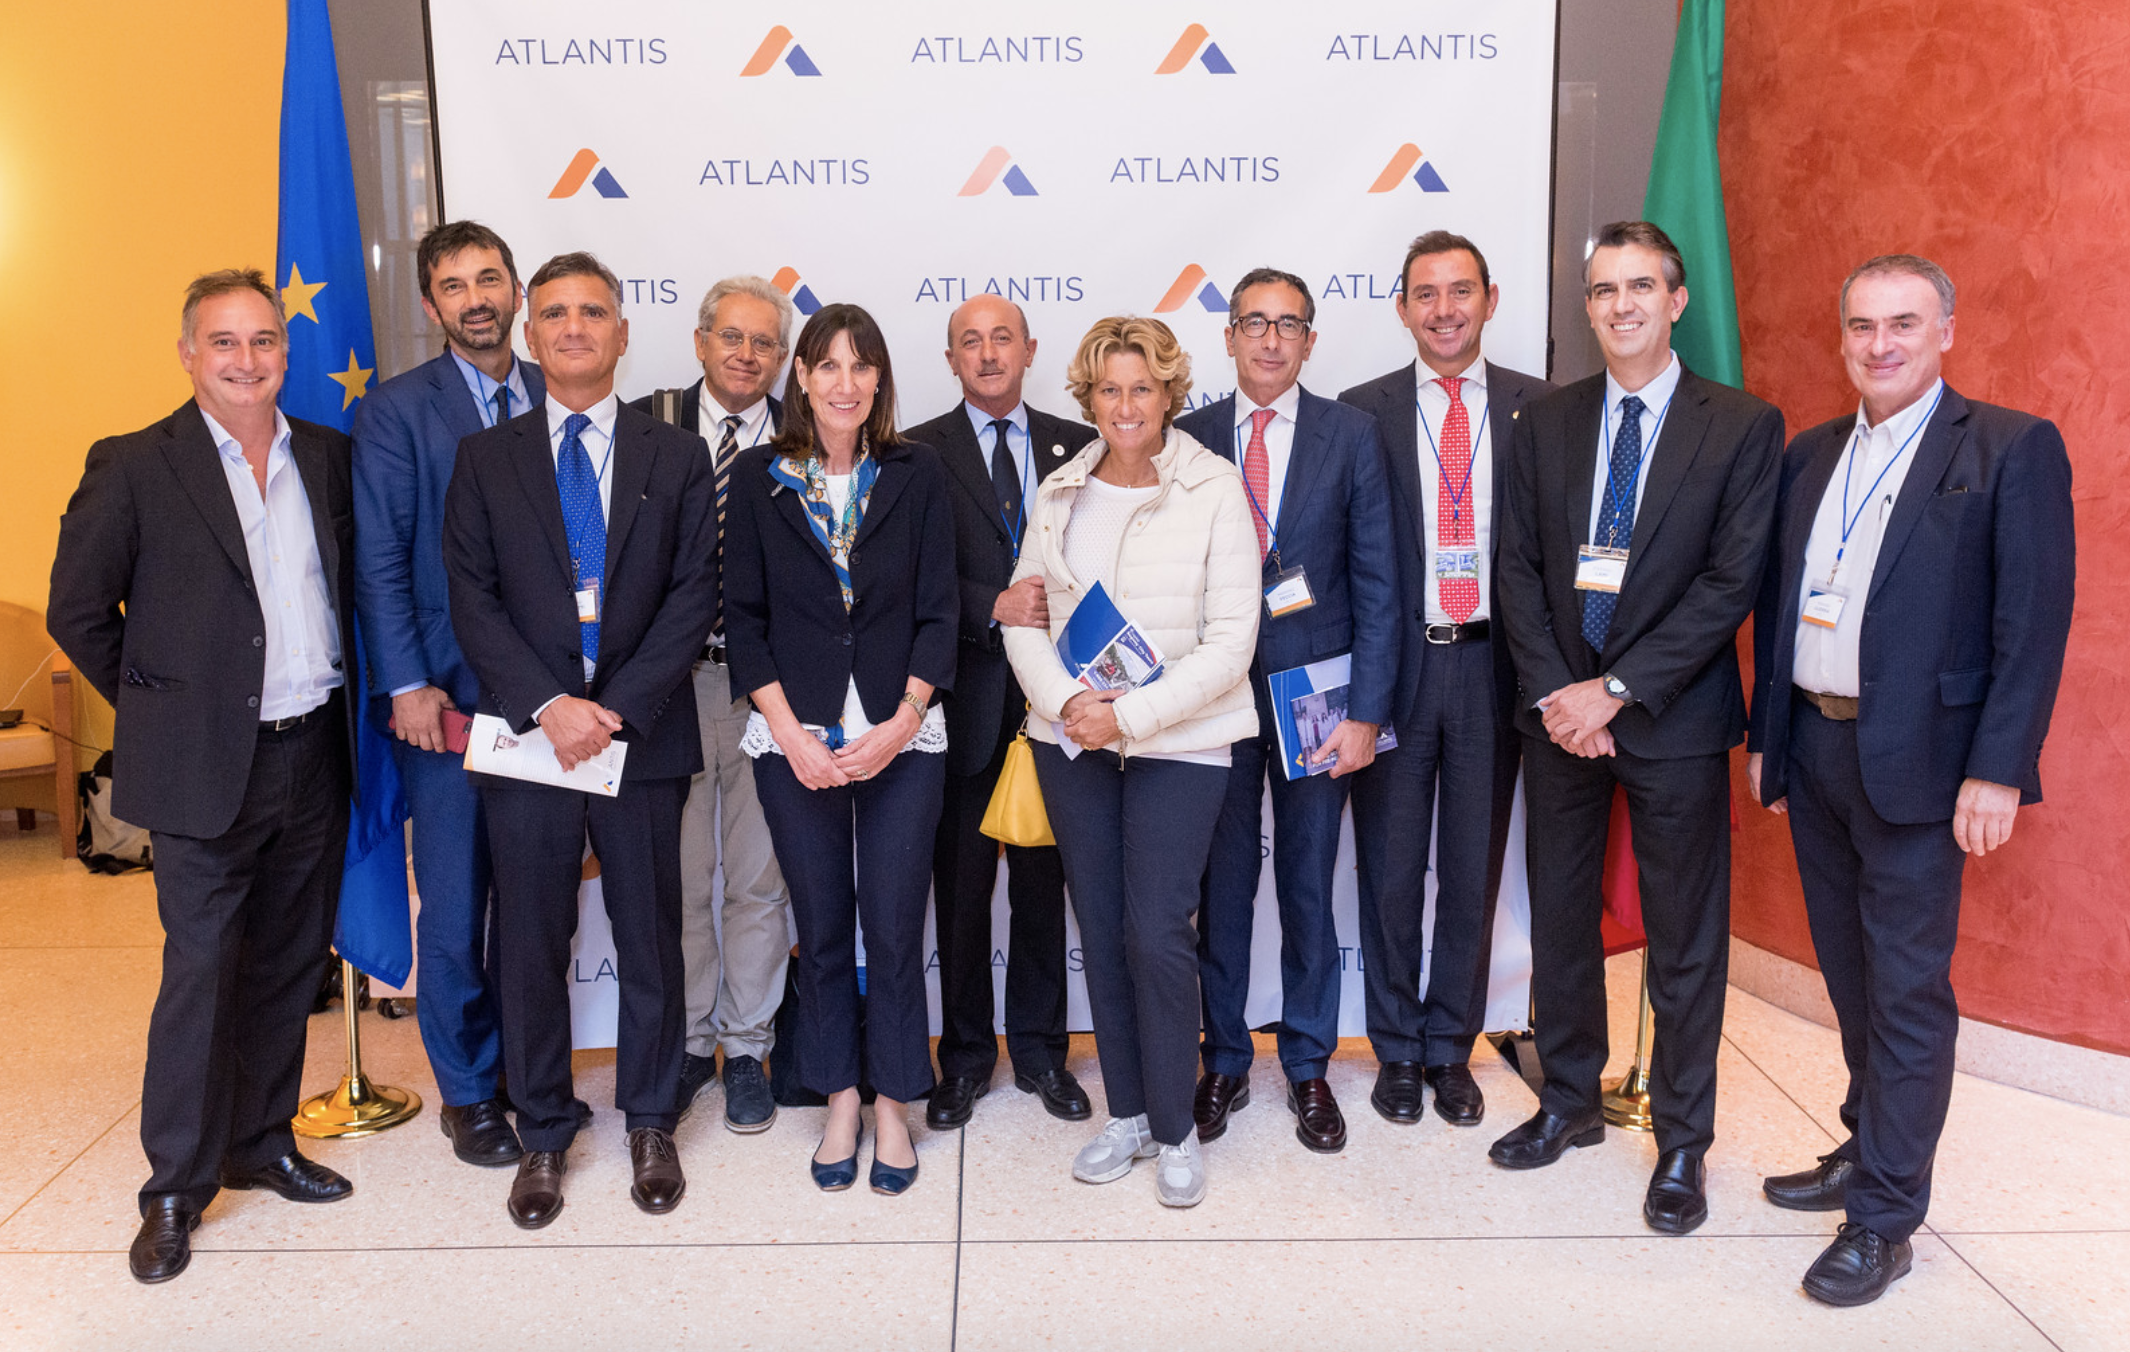 Atlantis Connect Conference, 2018: International physician and healthcare administrator attendees